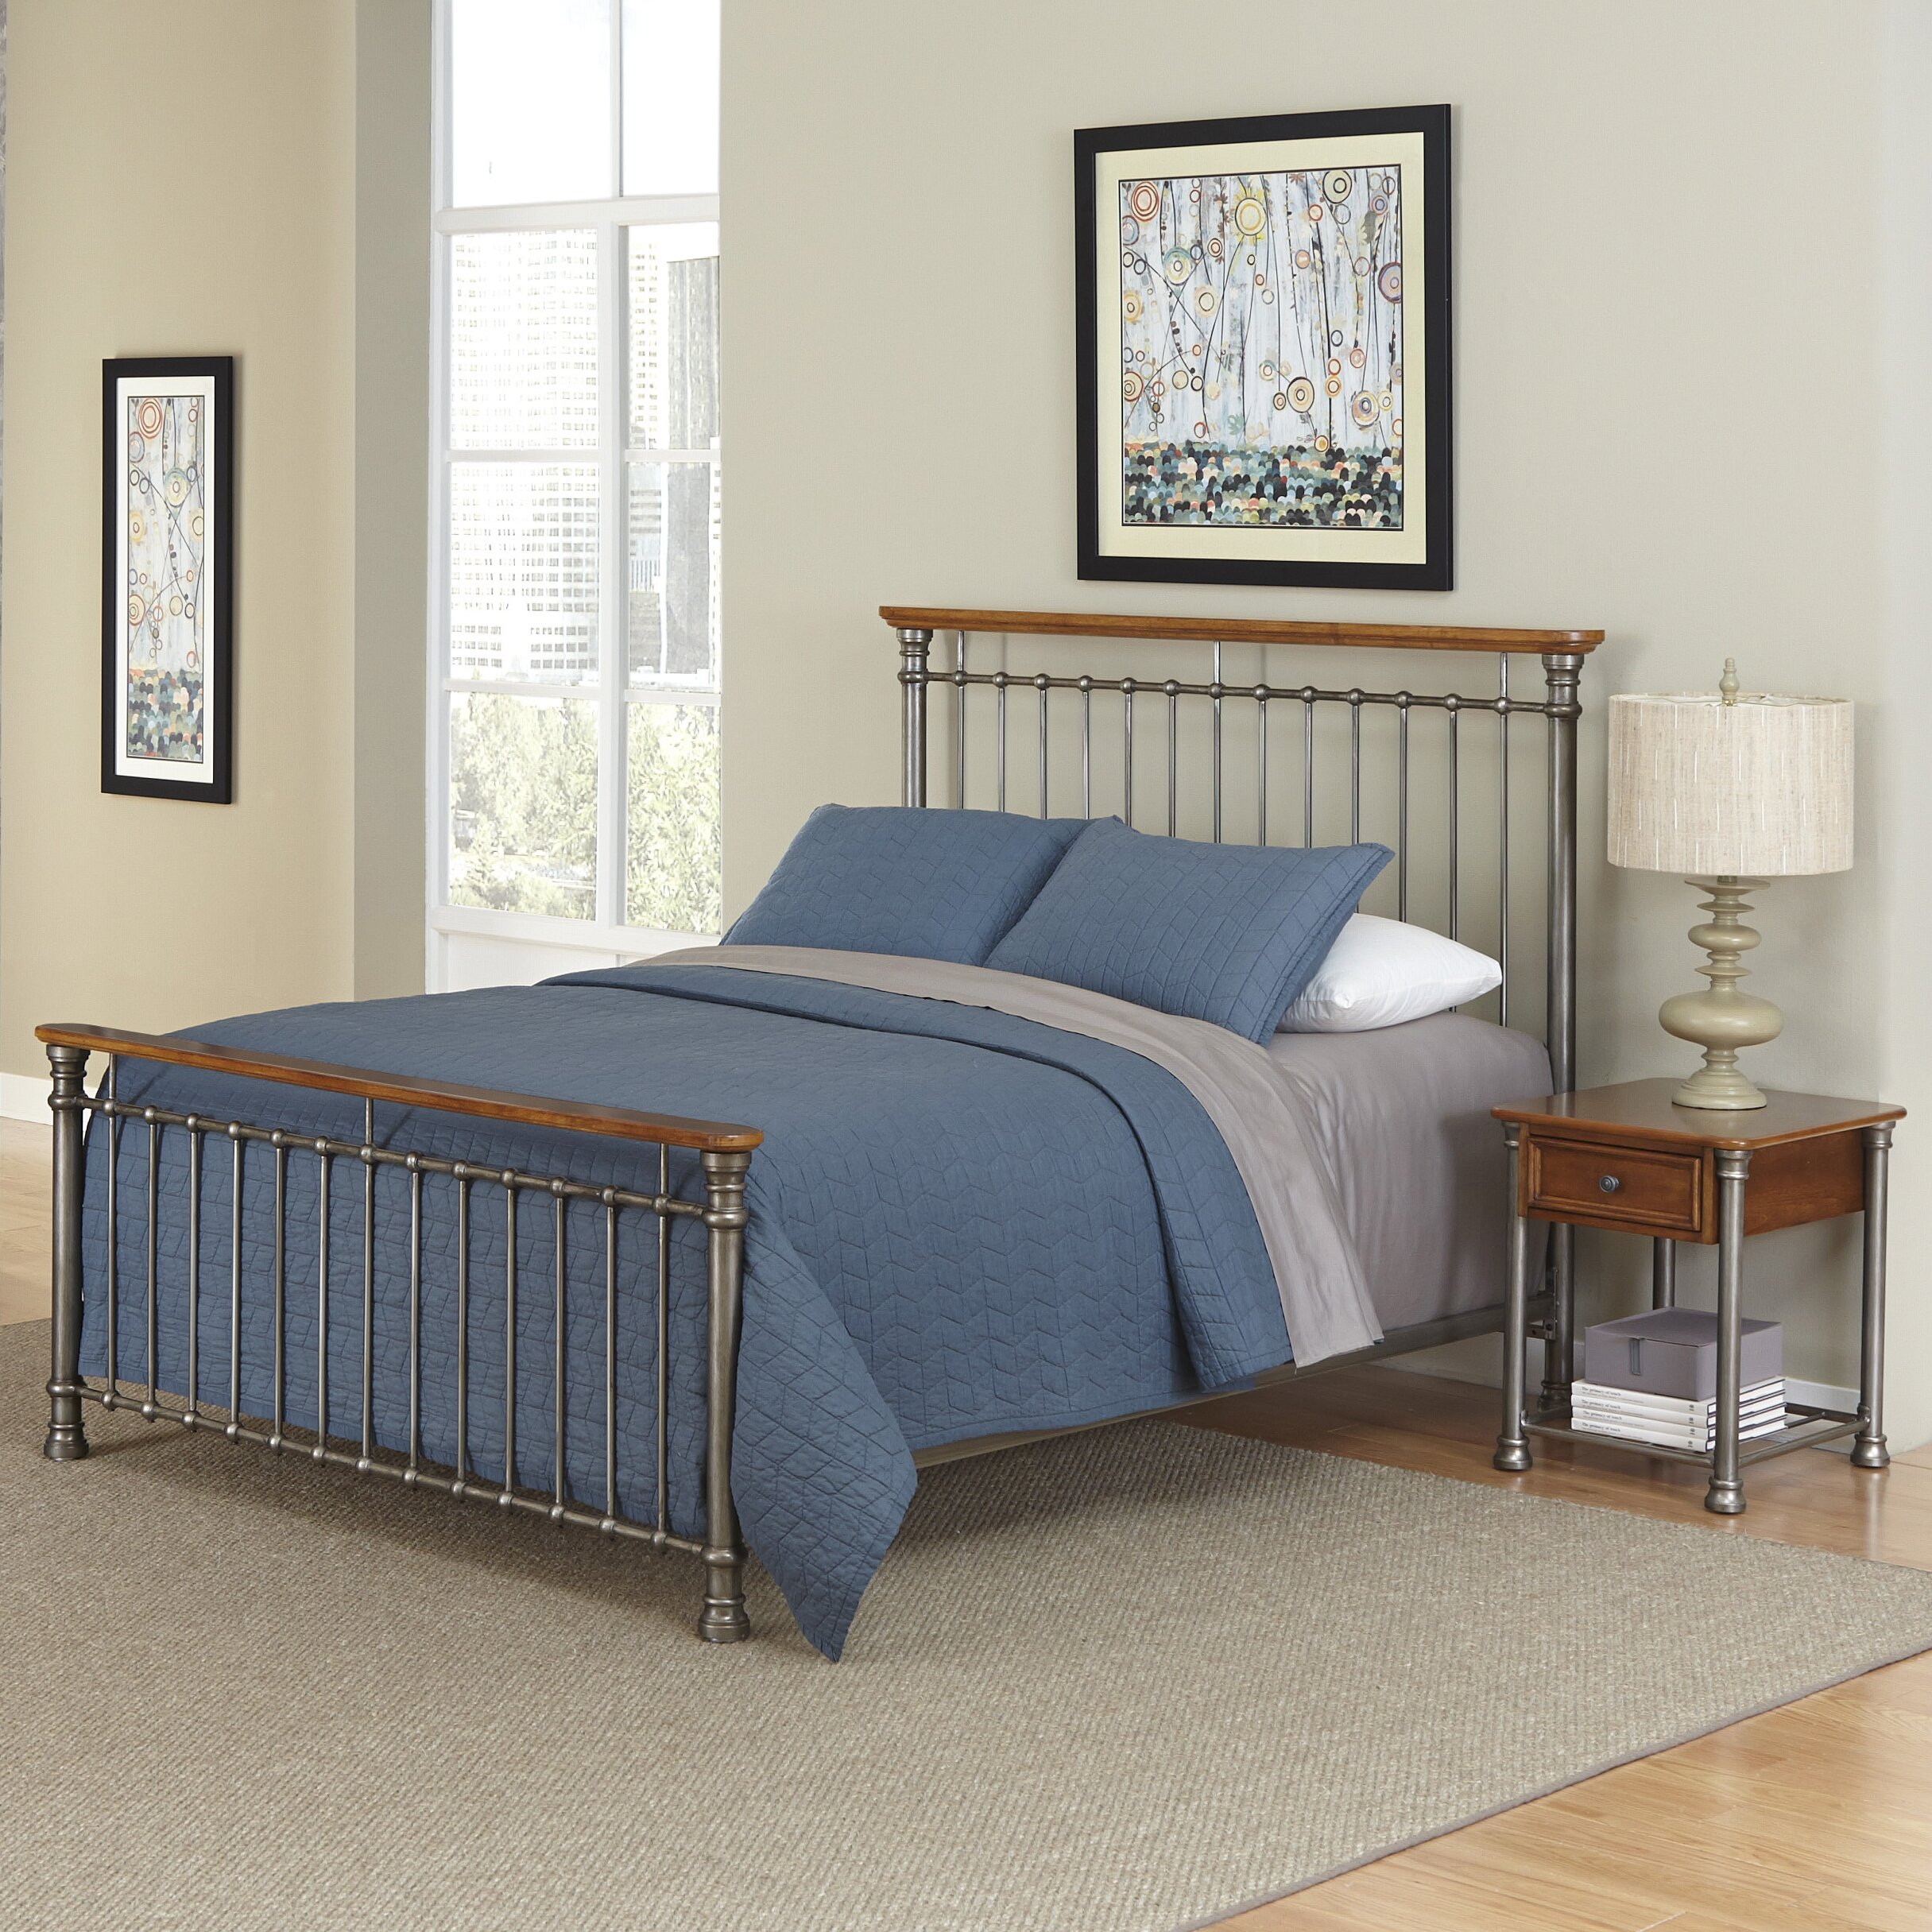 Home Styles Orleans Panel 2 Piece Bedroom Set Reviews Wayfair